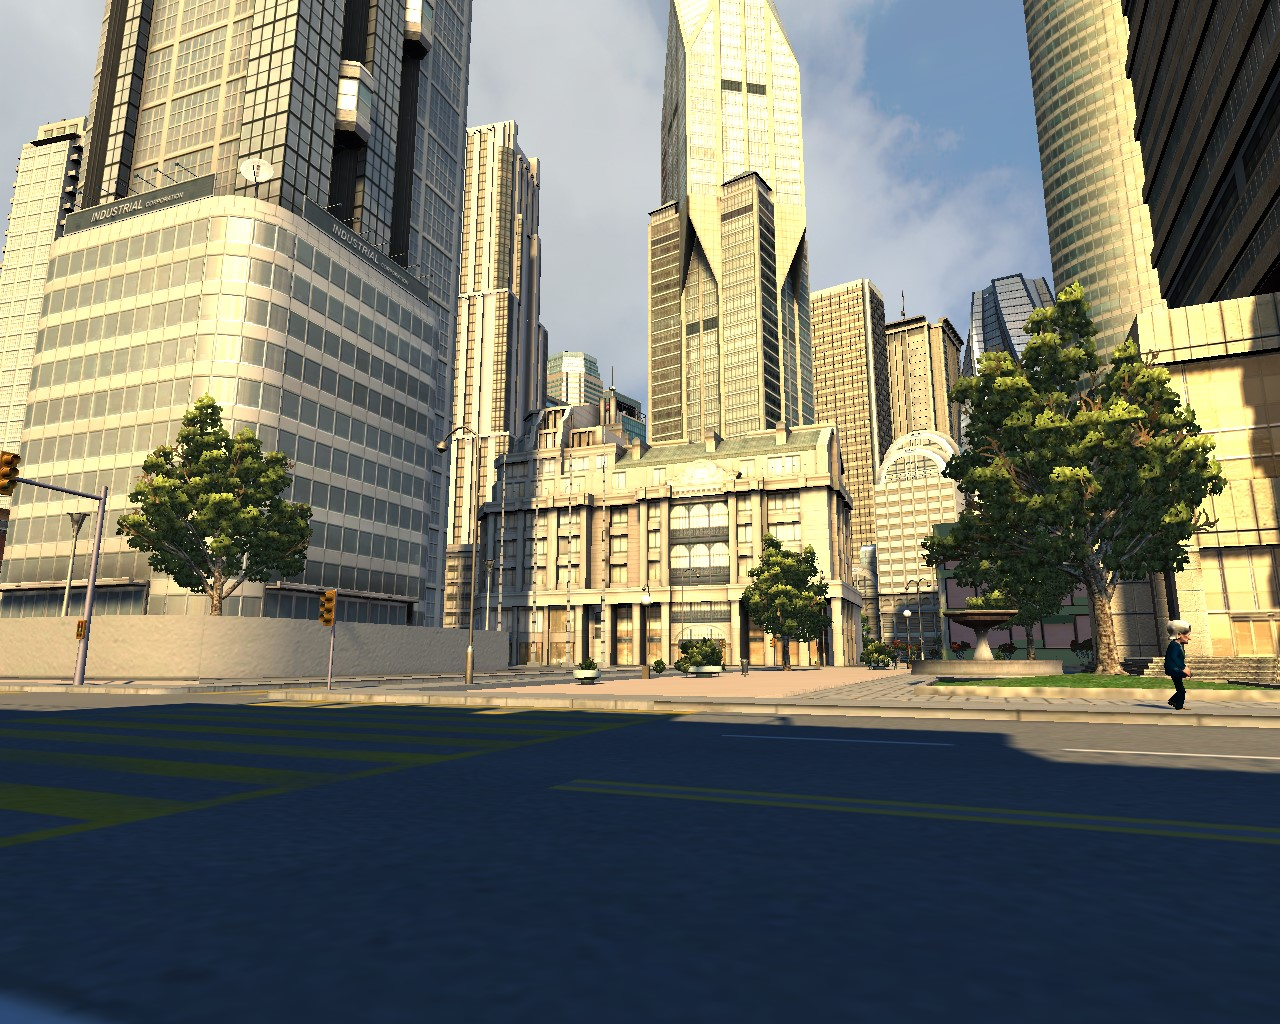 cxl_screenshot_lexus city_1.jpg